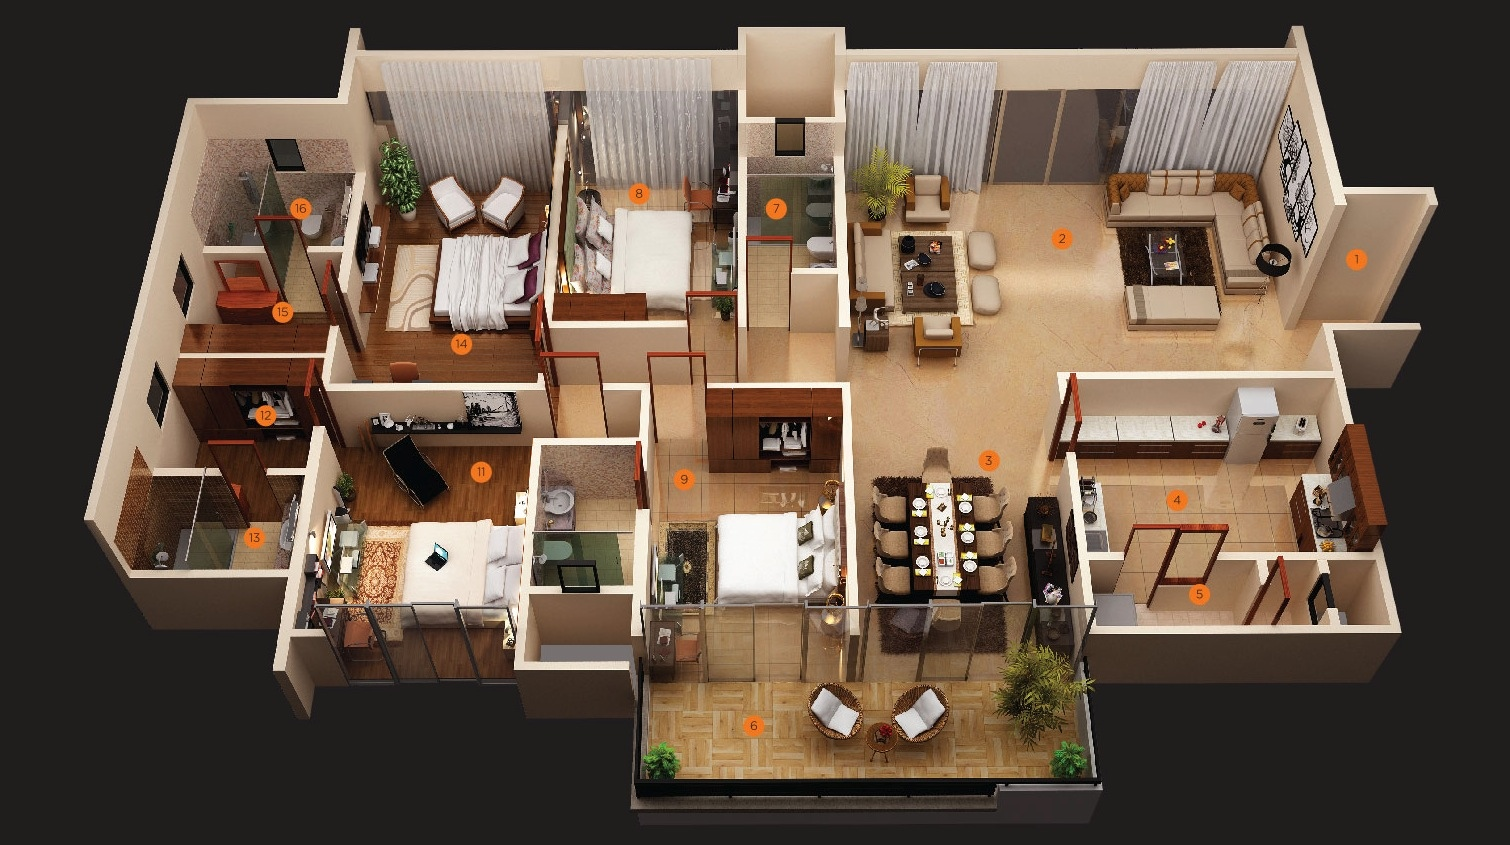 4 bedroom apartment house plans for 12x15 living room